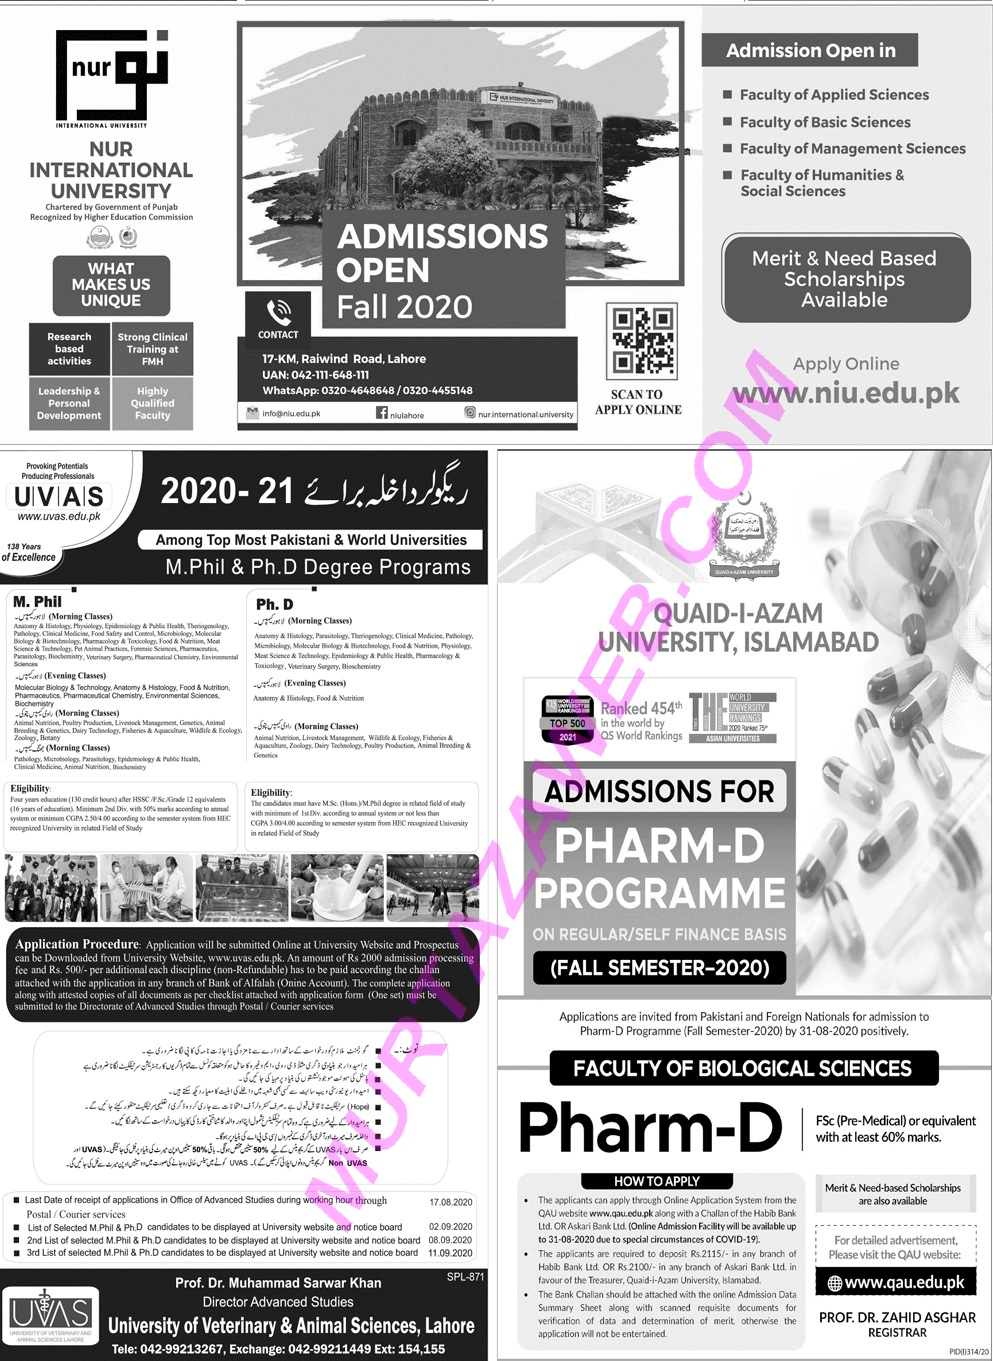 UVAS Admissions 2020 Last Date to Apply Online and Fee Details, Pharm-D